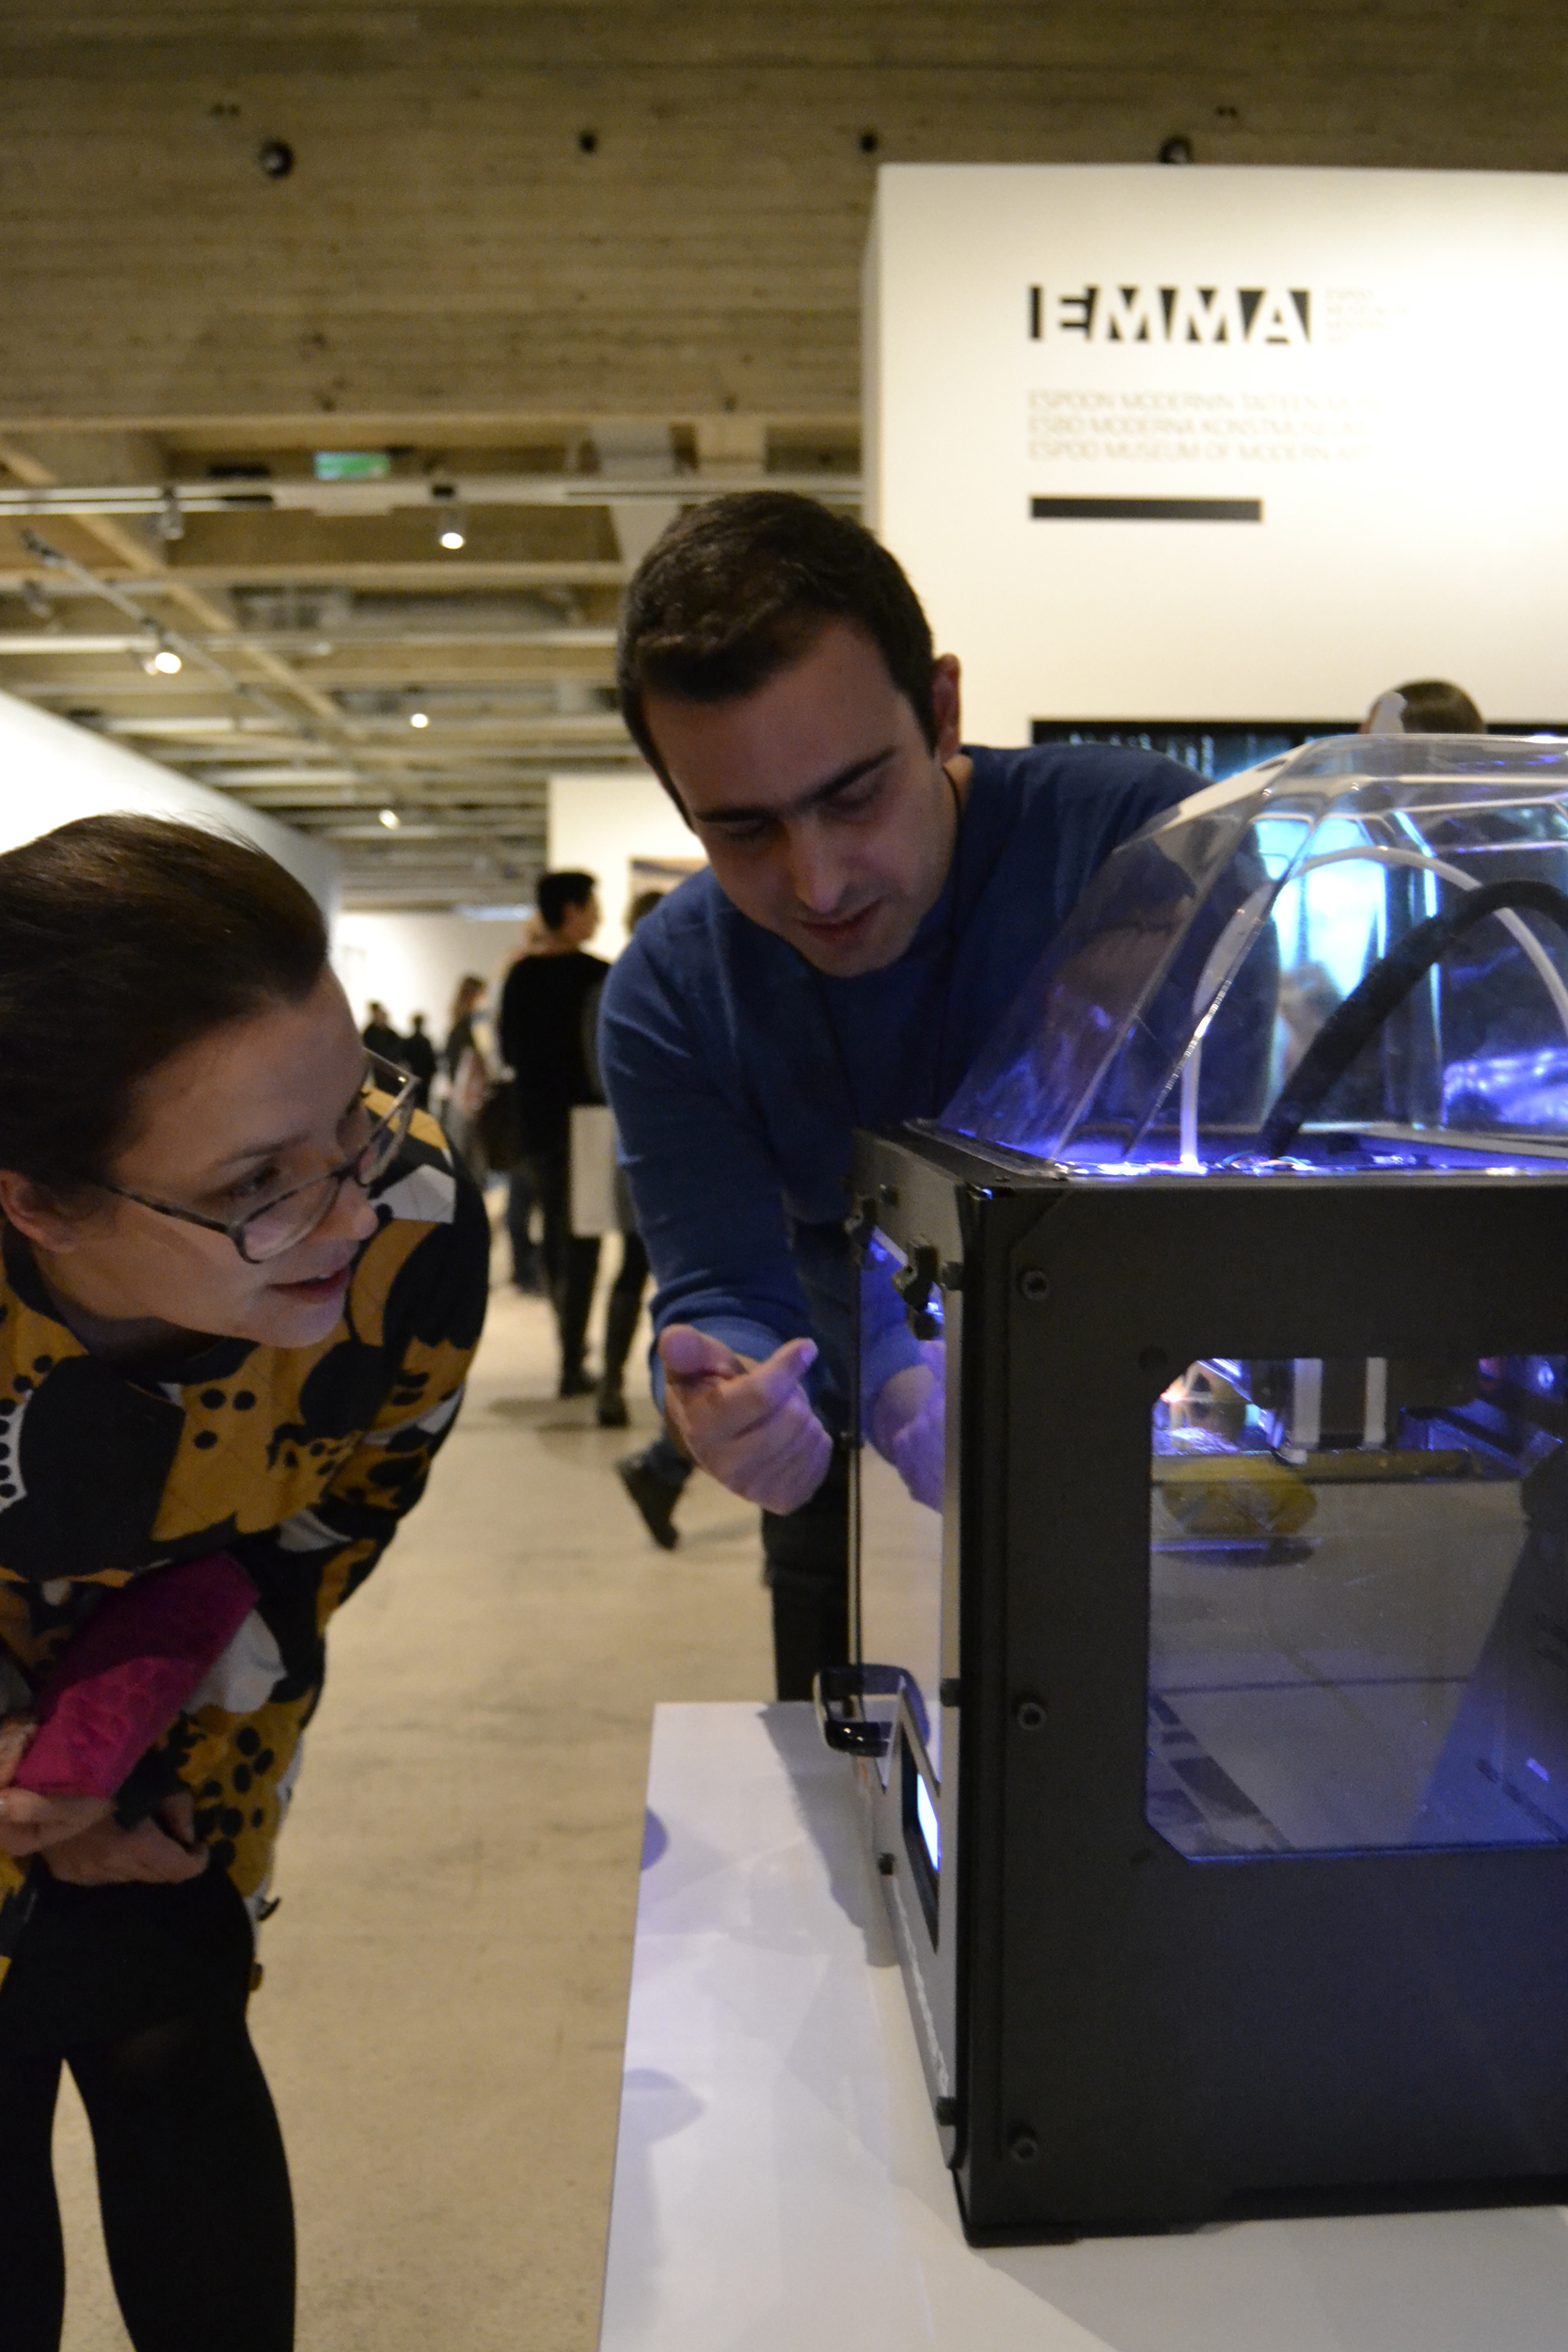 Aija Pippuri (on left) saw 3D printing for the first time in her life. Ali Neissi from Aalto FabLab answered Aija's questions about the technology as well as the material used in the printer.